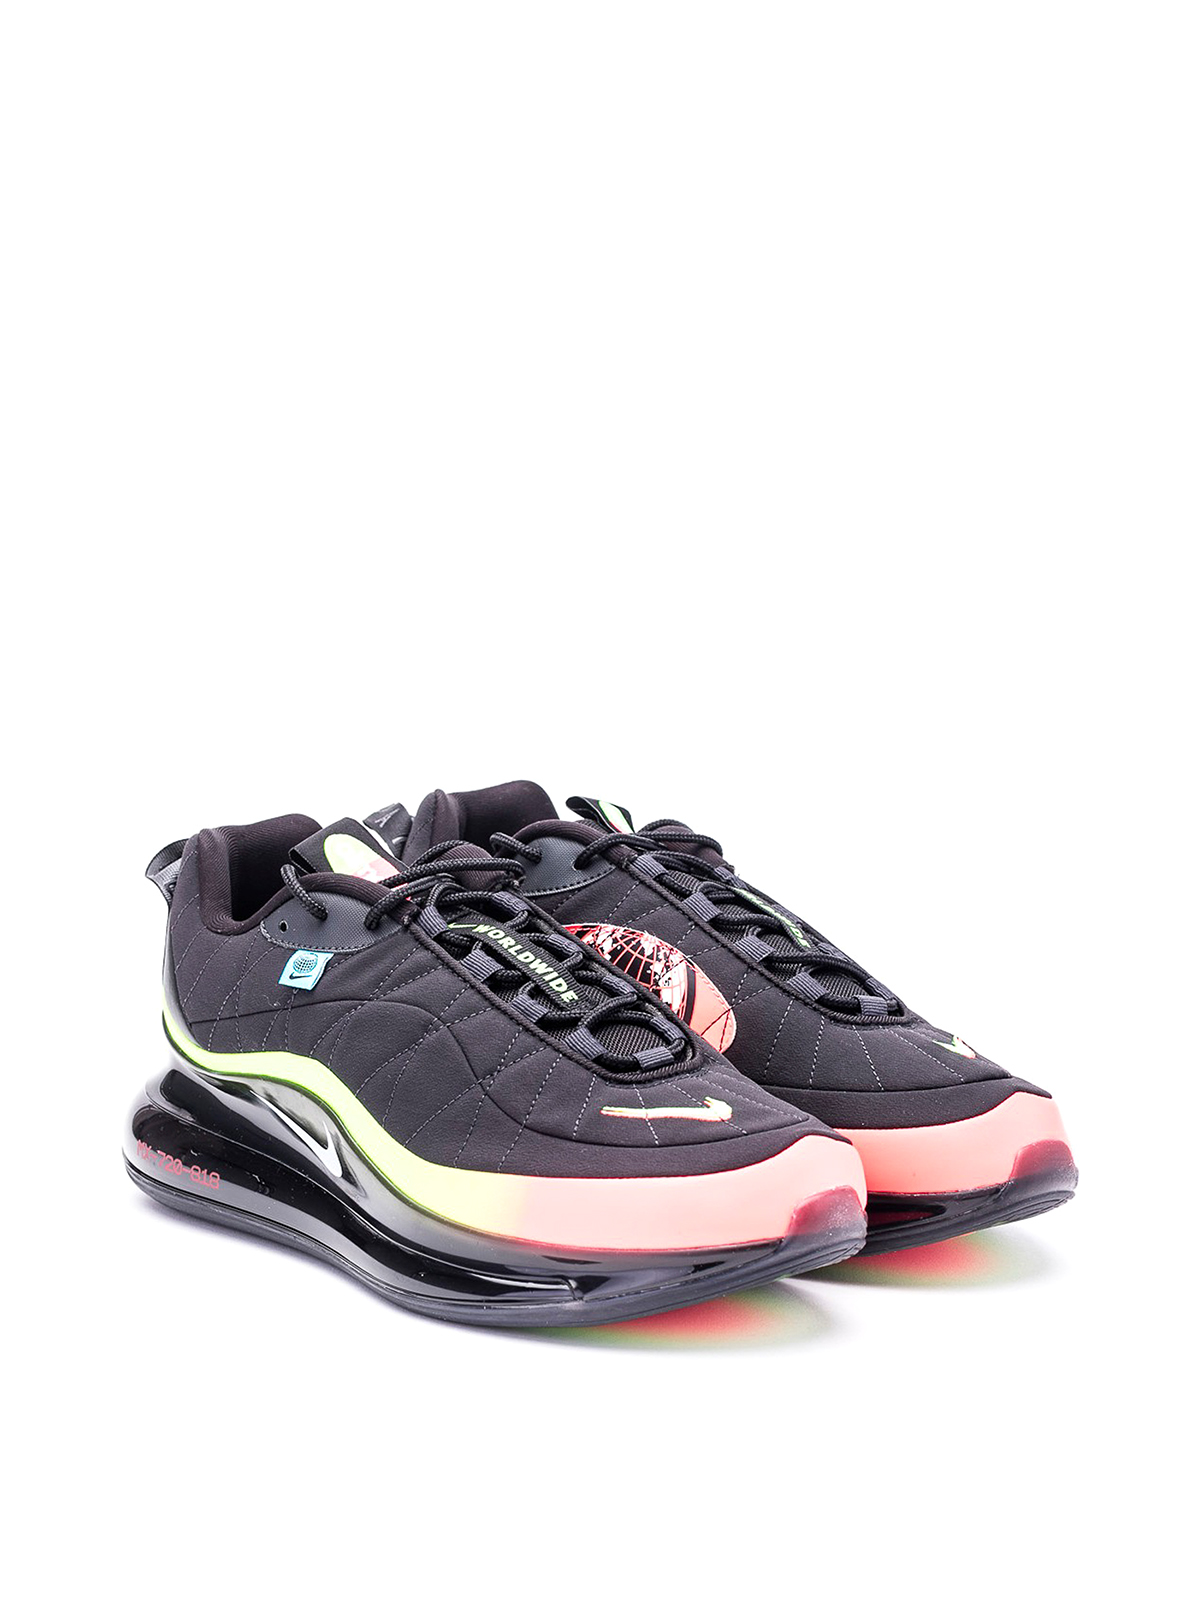 construir Trascender Seguro  Nike - Air Max 720 sneakers - trainers - CT1282001 | Shop online at iKRIX